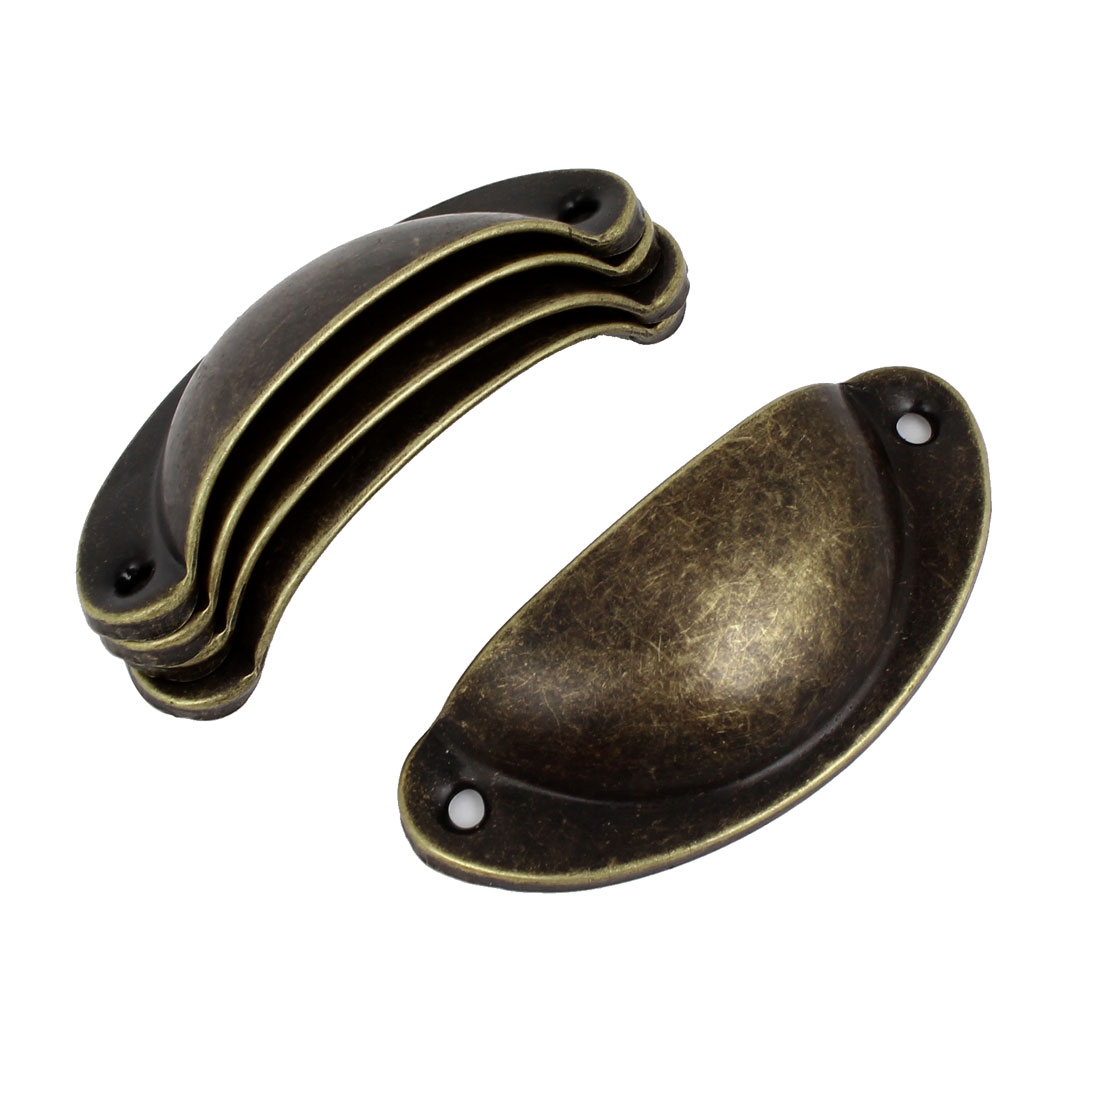 Home Vintage Style Drawer Door Pull Handle Bronze Tone 8cm Length 5 Pcs